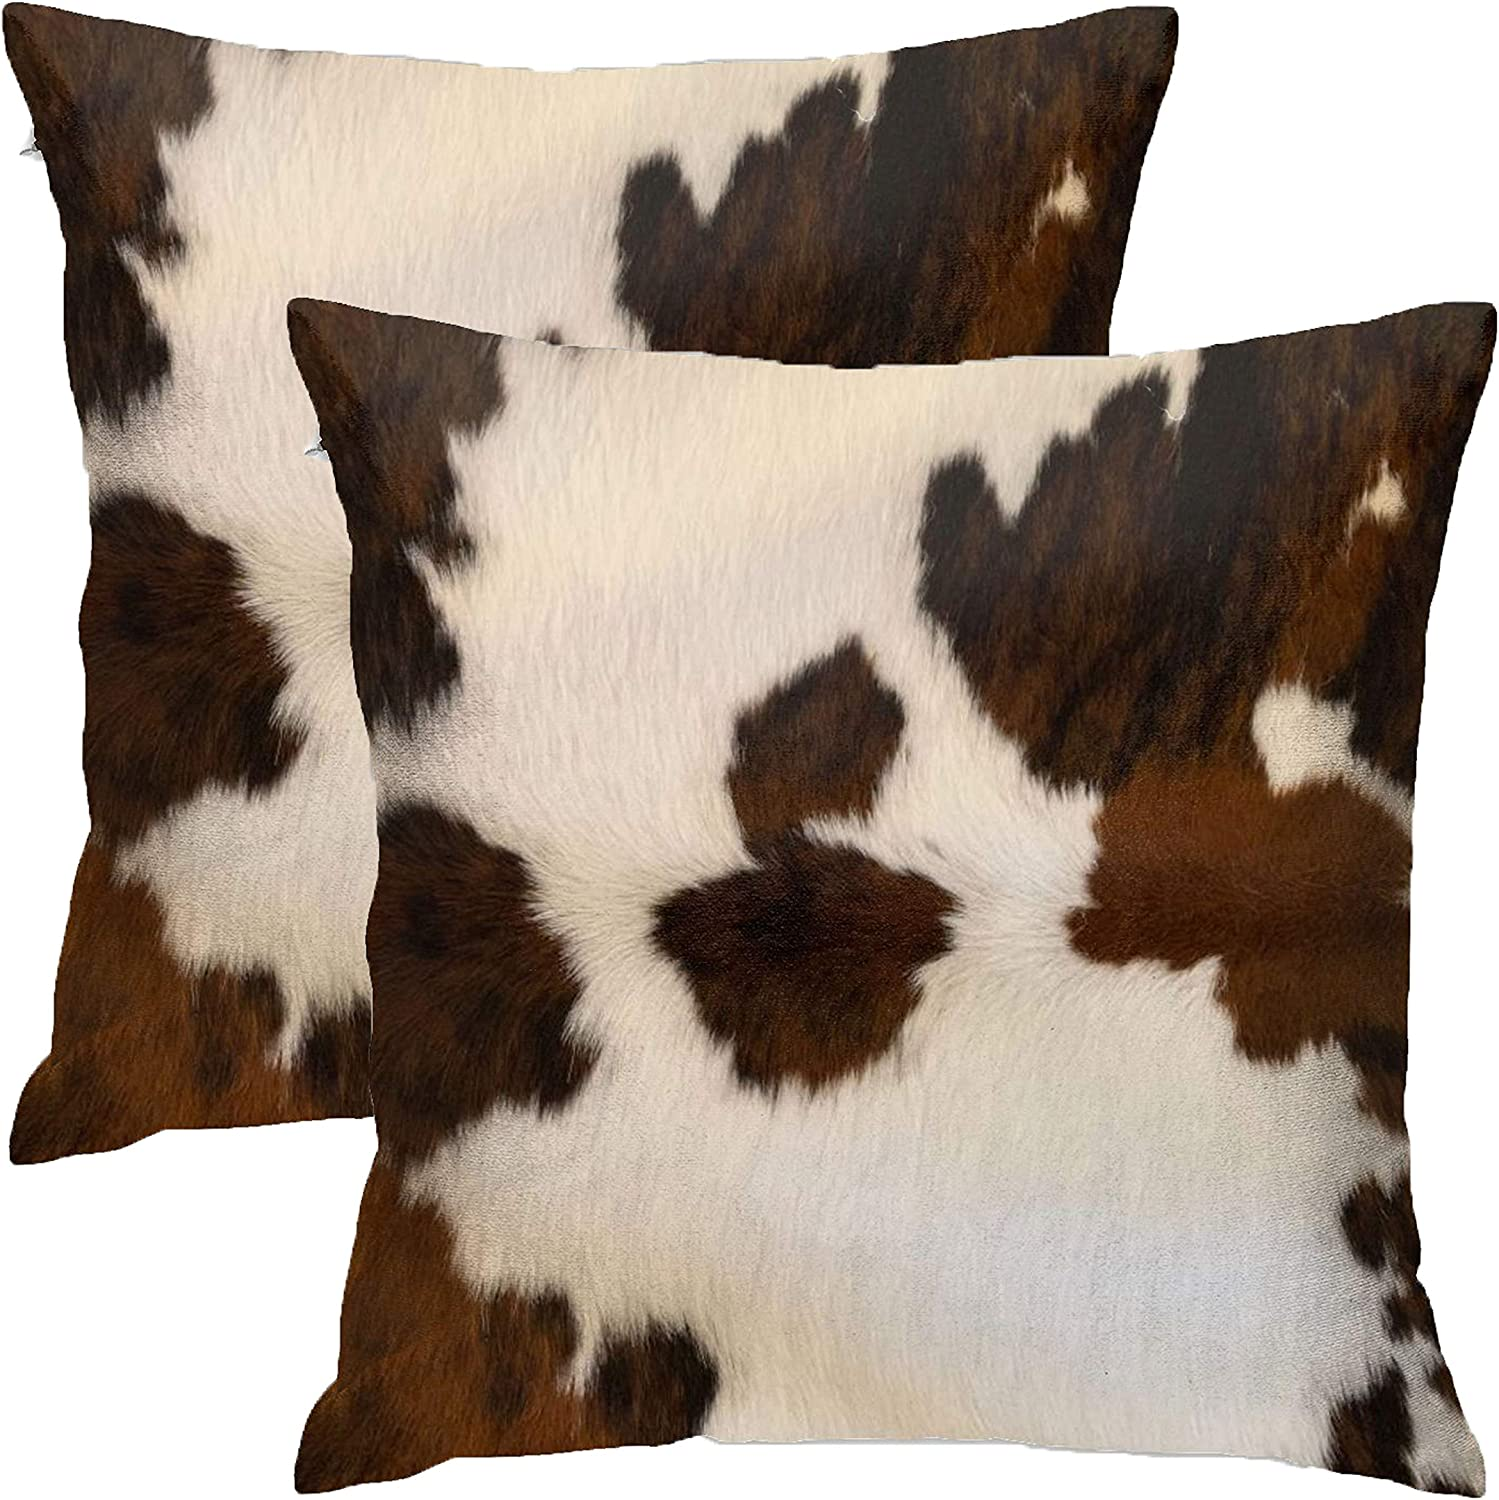 Amazon Com Granbey Set Of 2 Decorative Pillows Covers Cow Skin Abstract Africa Animal Farm Fashion Home Sofa Cushion Cover Throw Pillowcase Gift For Couch Indoor Bed 18 X 18 Inch Home Kitchen